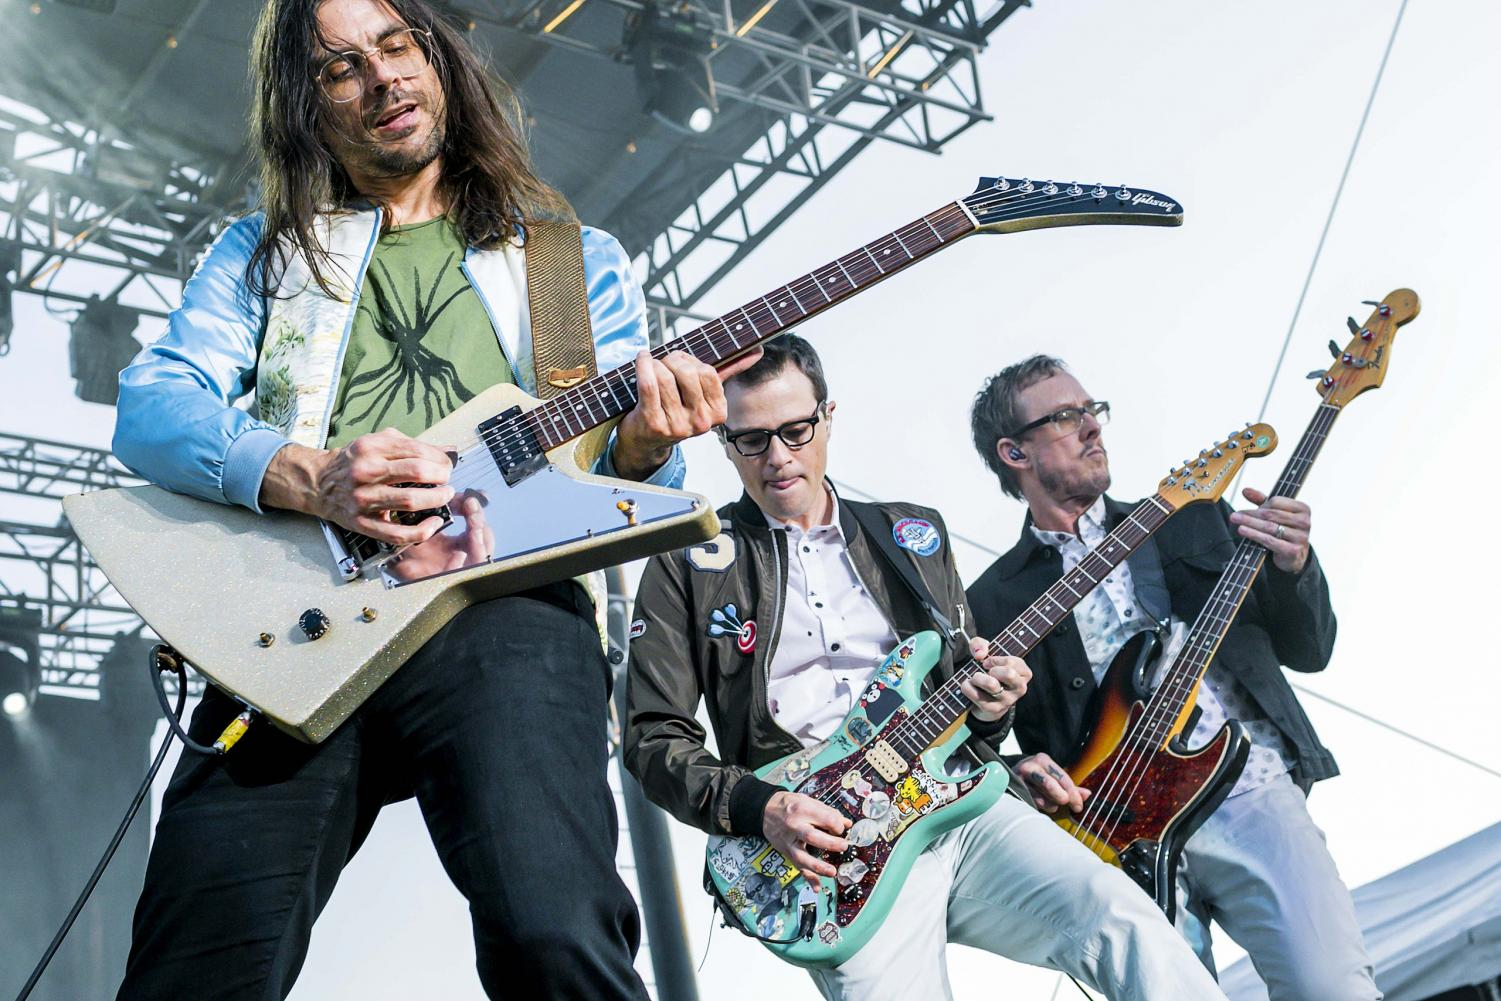 From left to right: Brian Bell, Rivers Cuomo and Scott Shriner Rock out at a show. Drummer Pat Wilson is not featured.